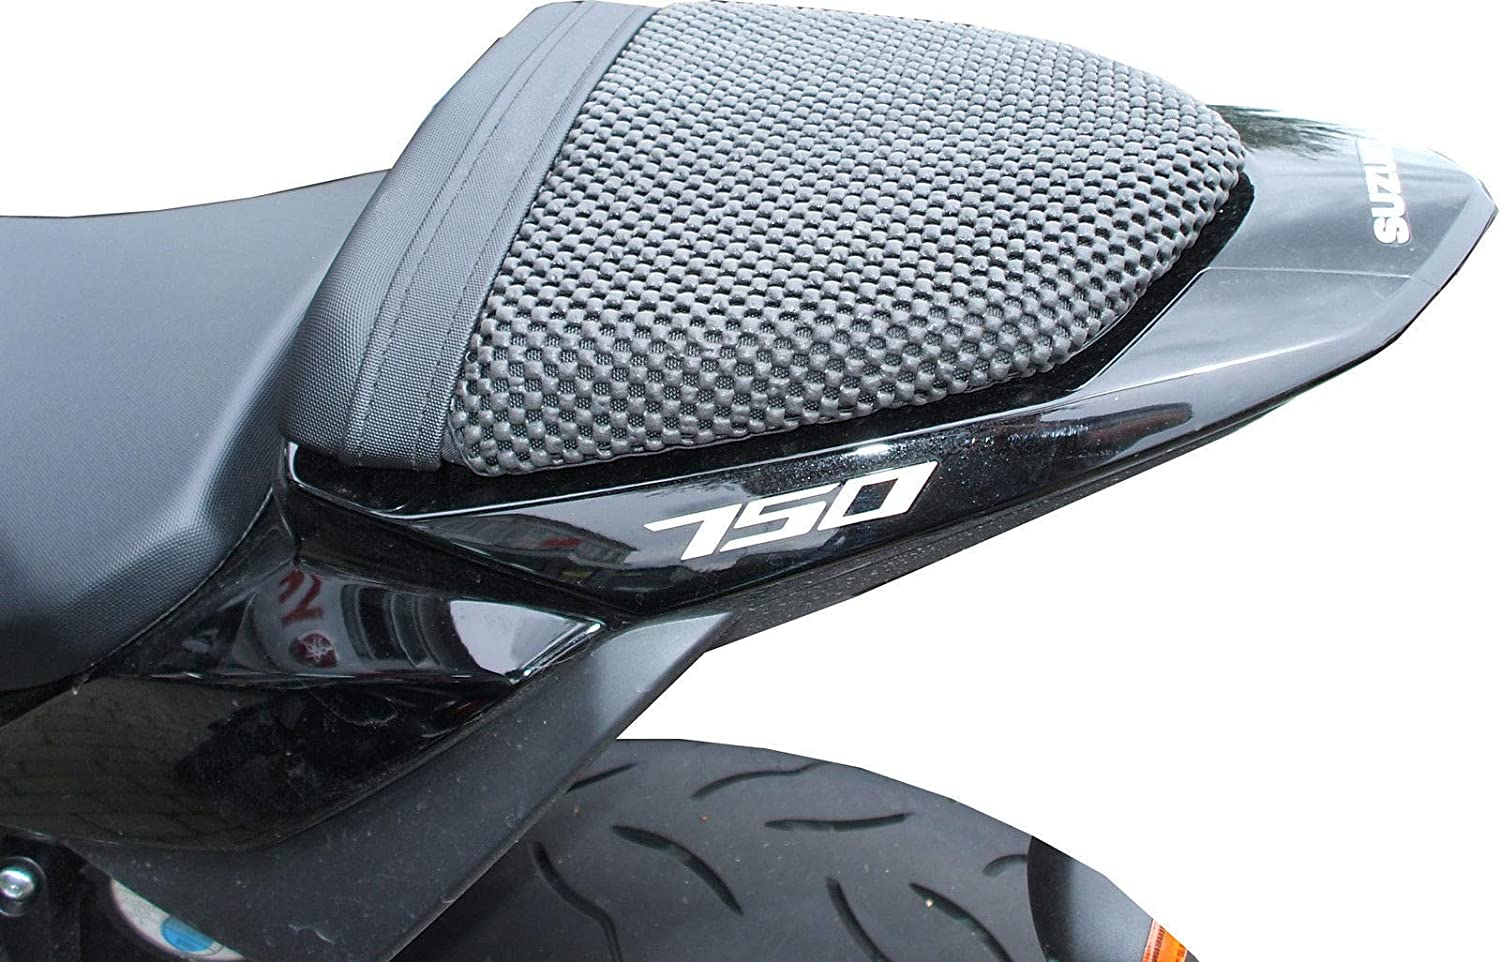 SUZUKI GSR 750 (2011-2016) TRIBOSEAT COPRISELLA PASSEGGERO ANTISCIVOLO NERO ADVANCED SEATING TECHNOLOGY LIMITED